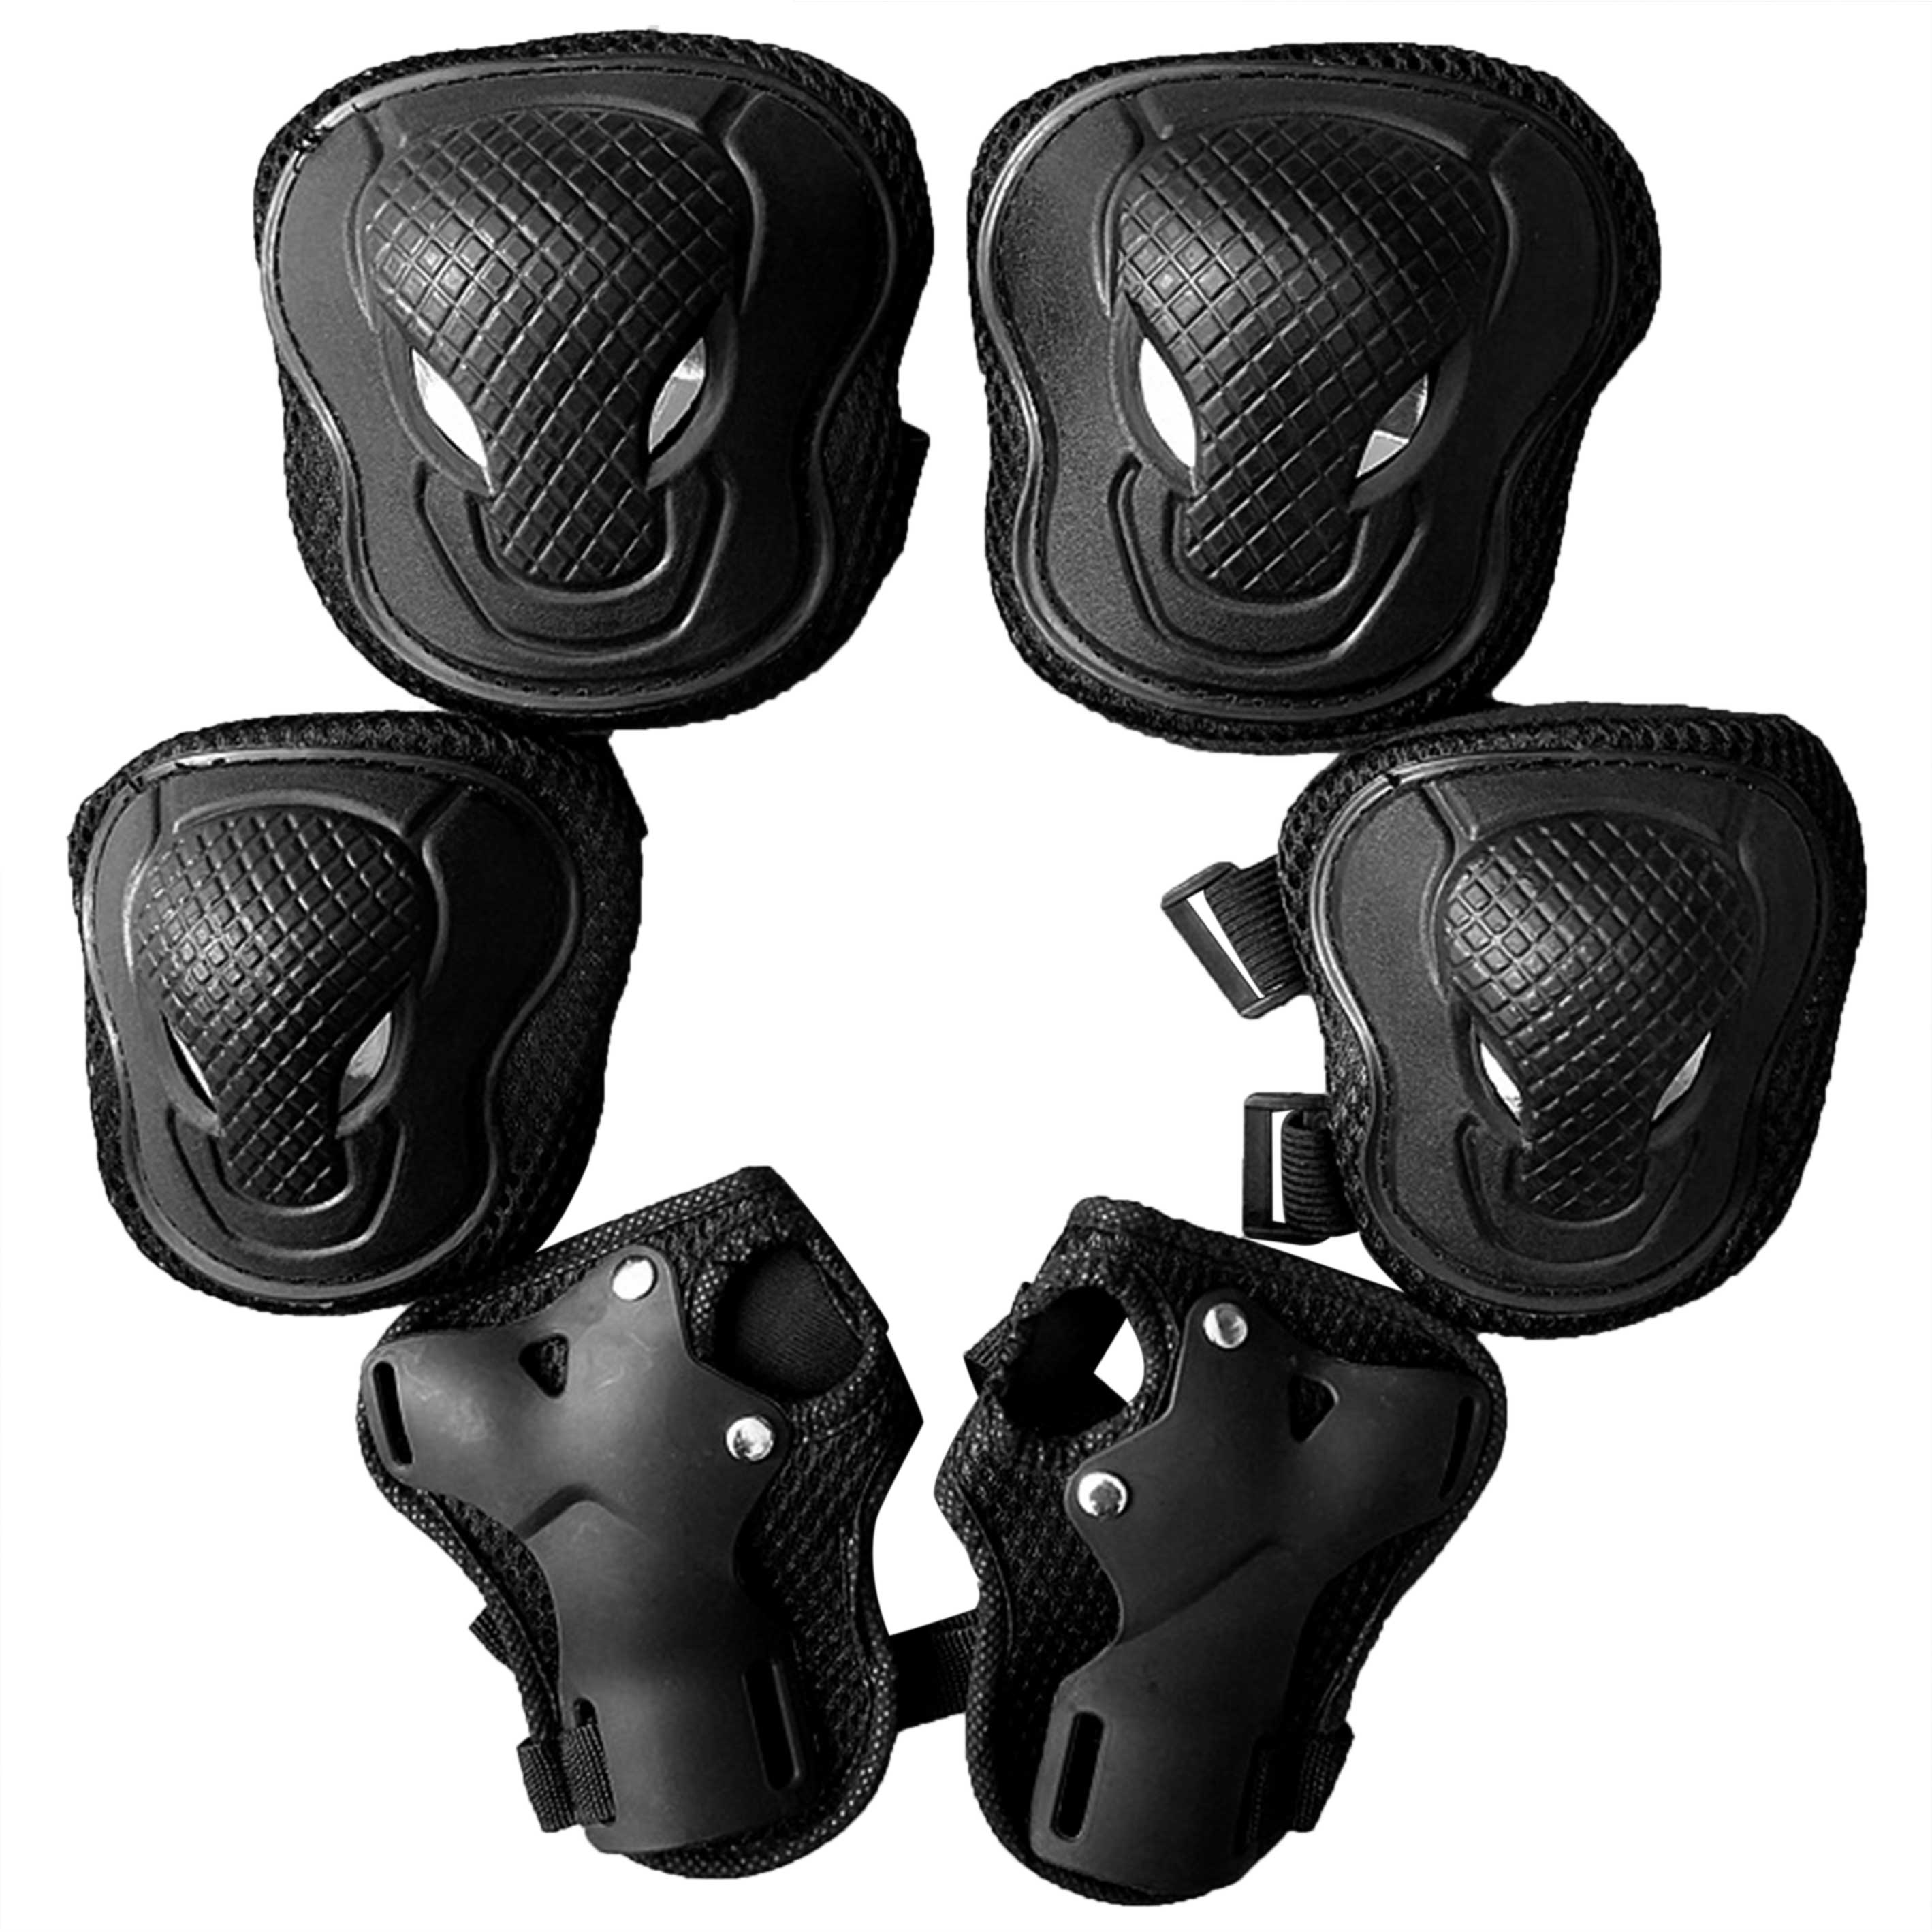 6pcs Accessories Outdoor Sports For Kids Safety Elbow Knee Pads Sponge Wrist Guard Protective Gear Set Roller Skating Cycling